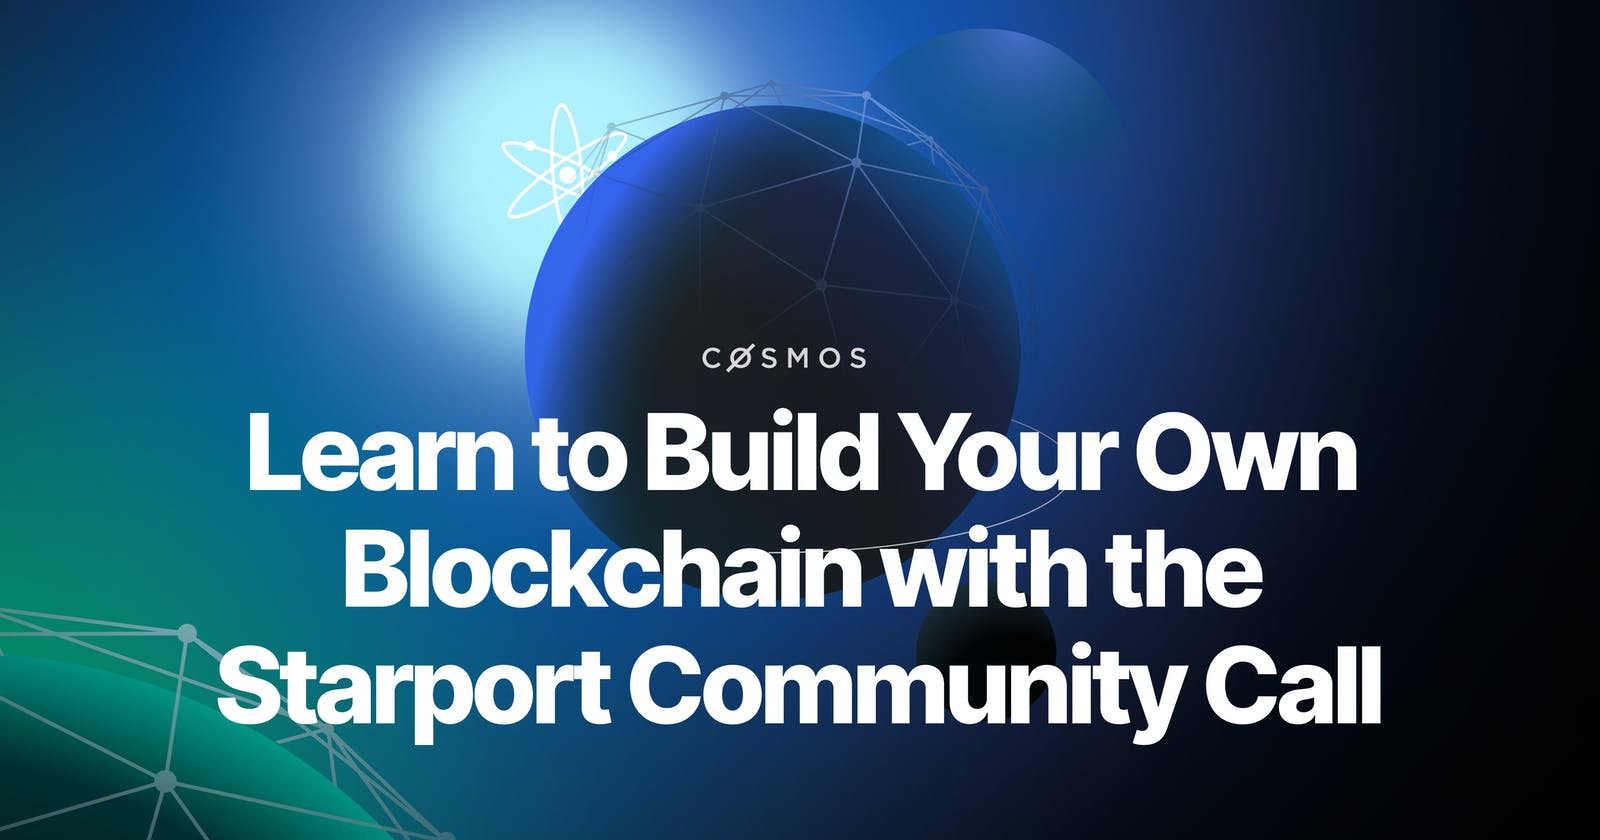 Learn to Build Your Own Blockchain with the Starport Community Call